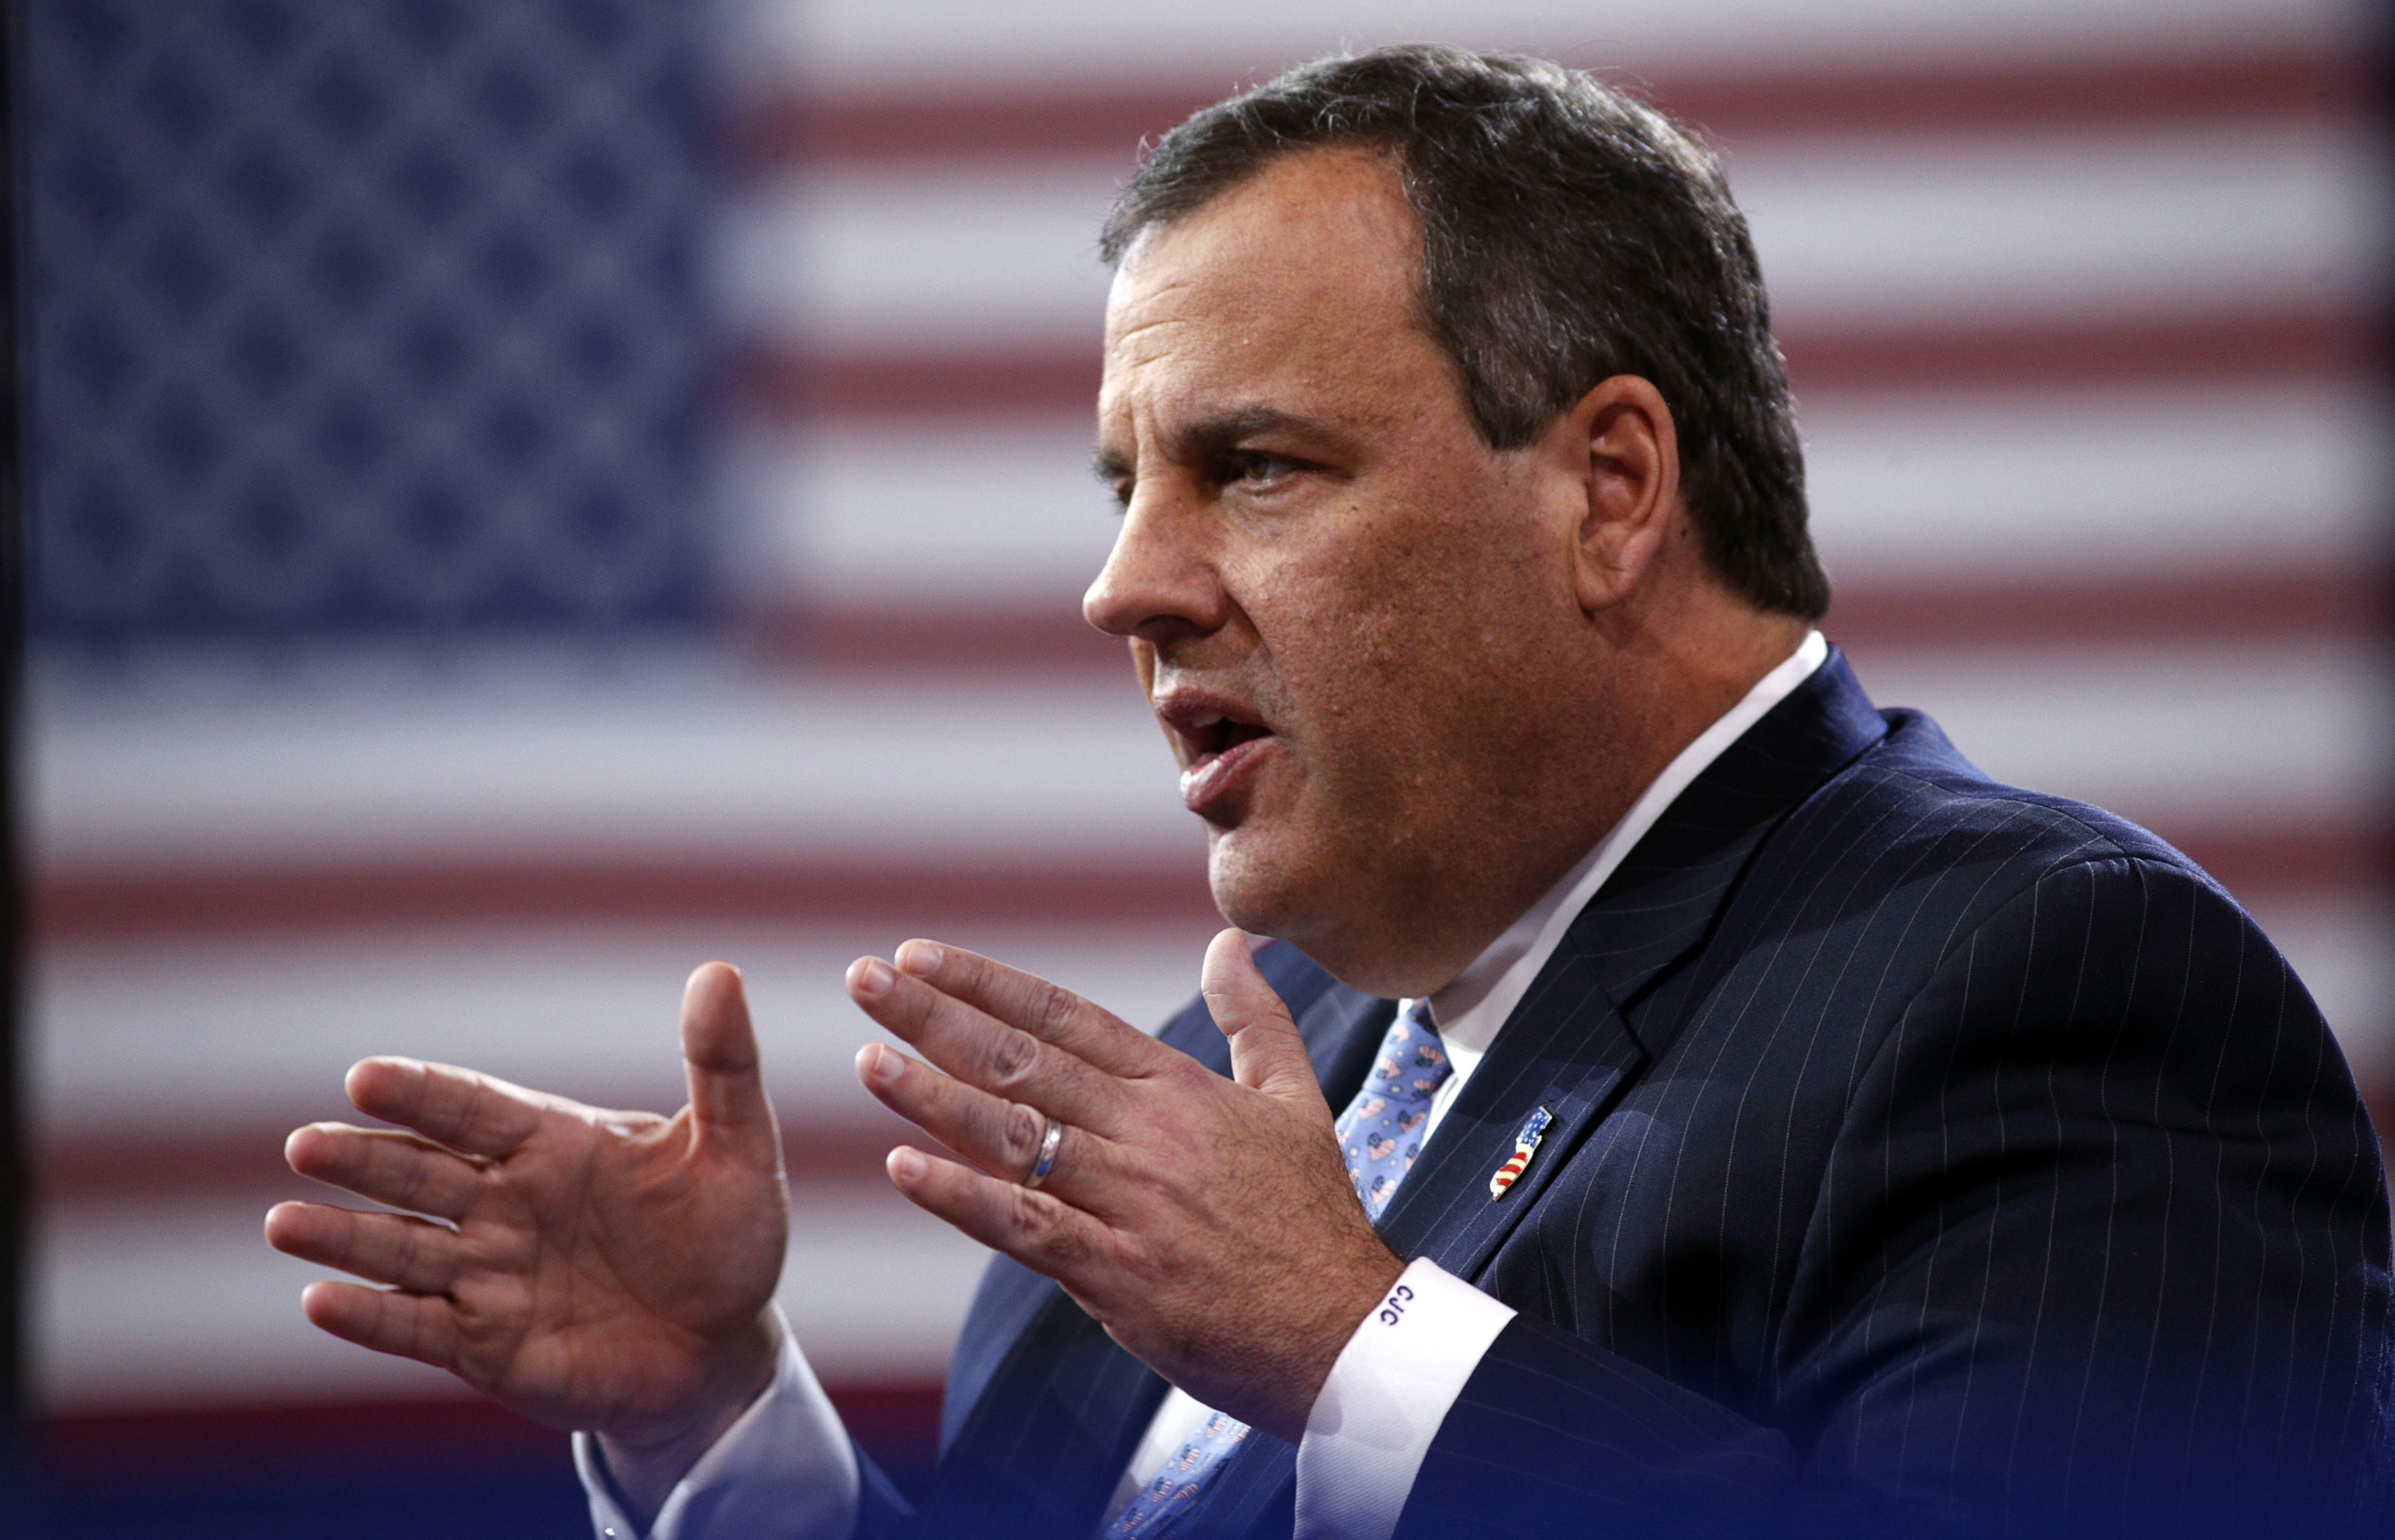 Chris Christie Gets Co...